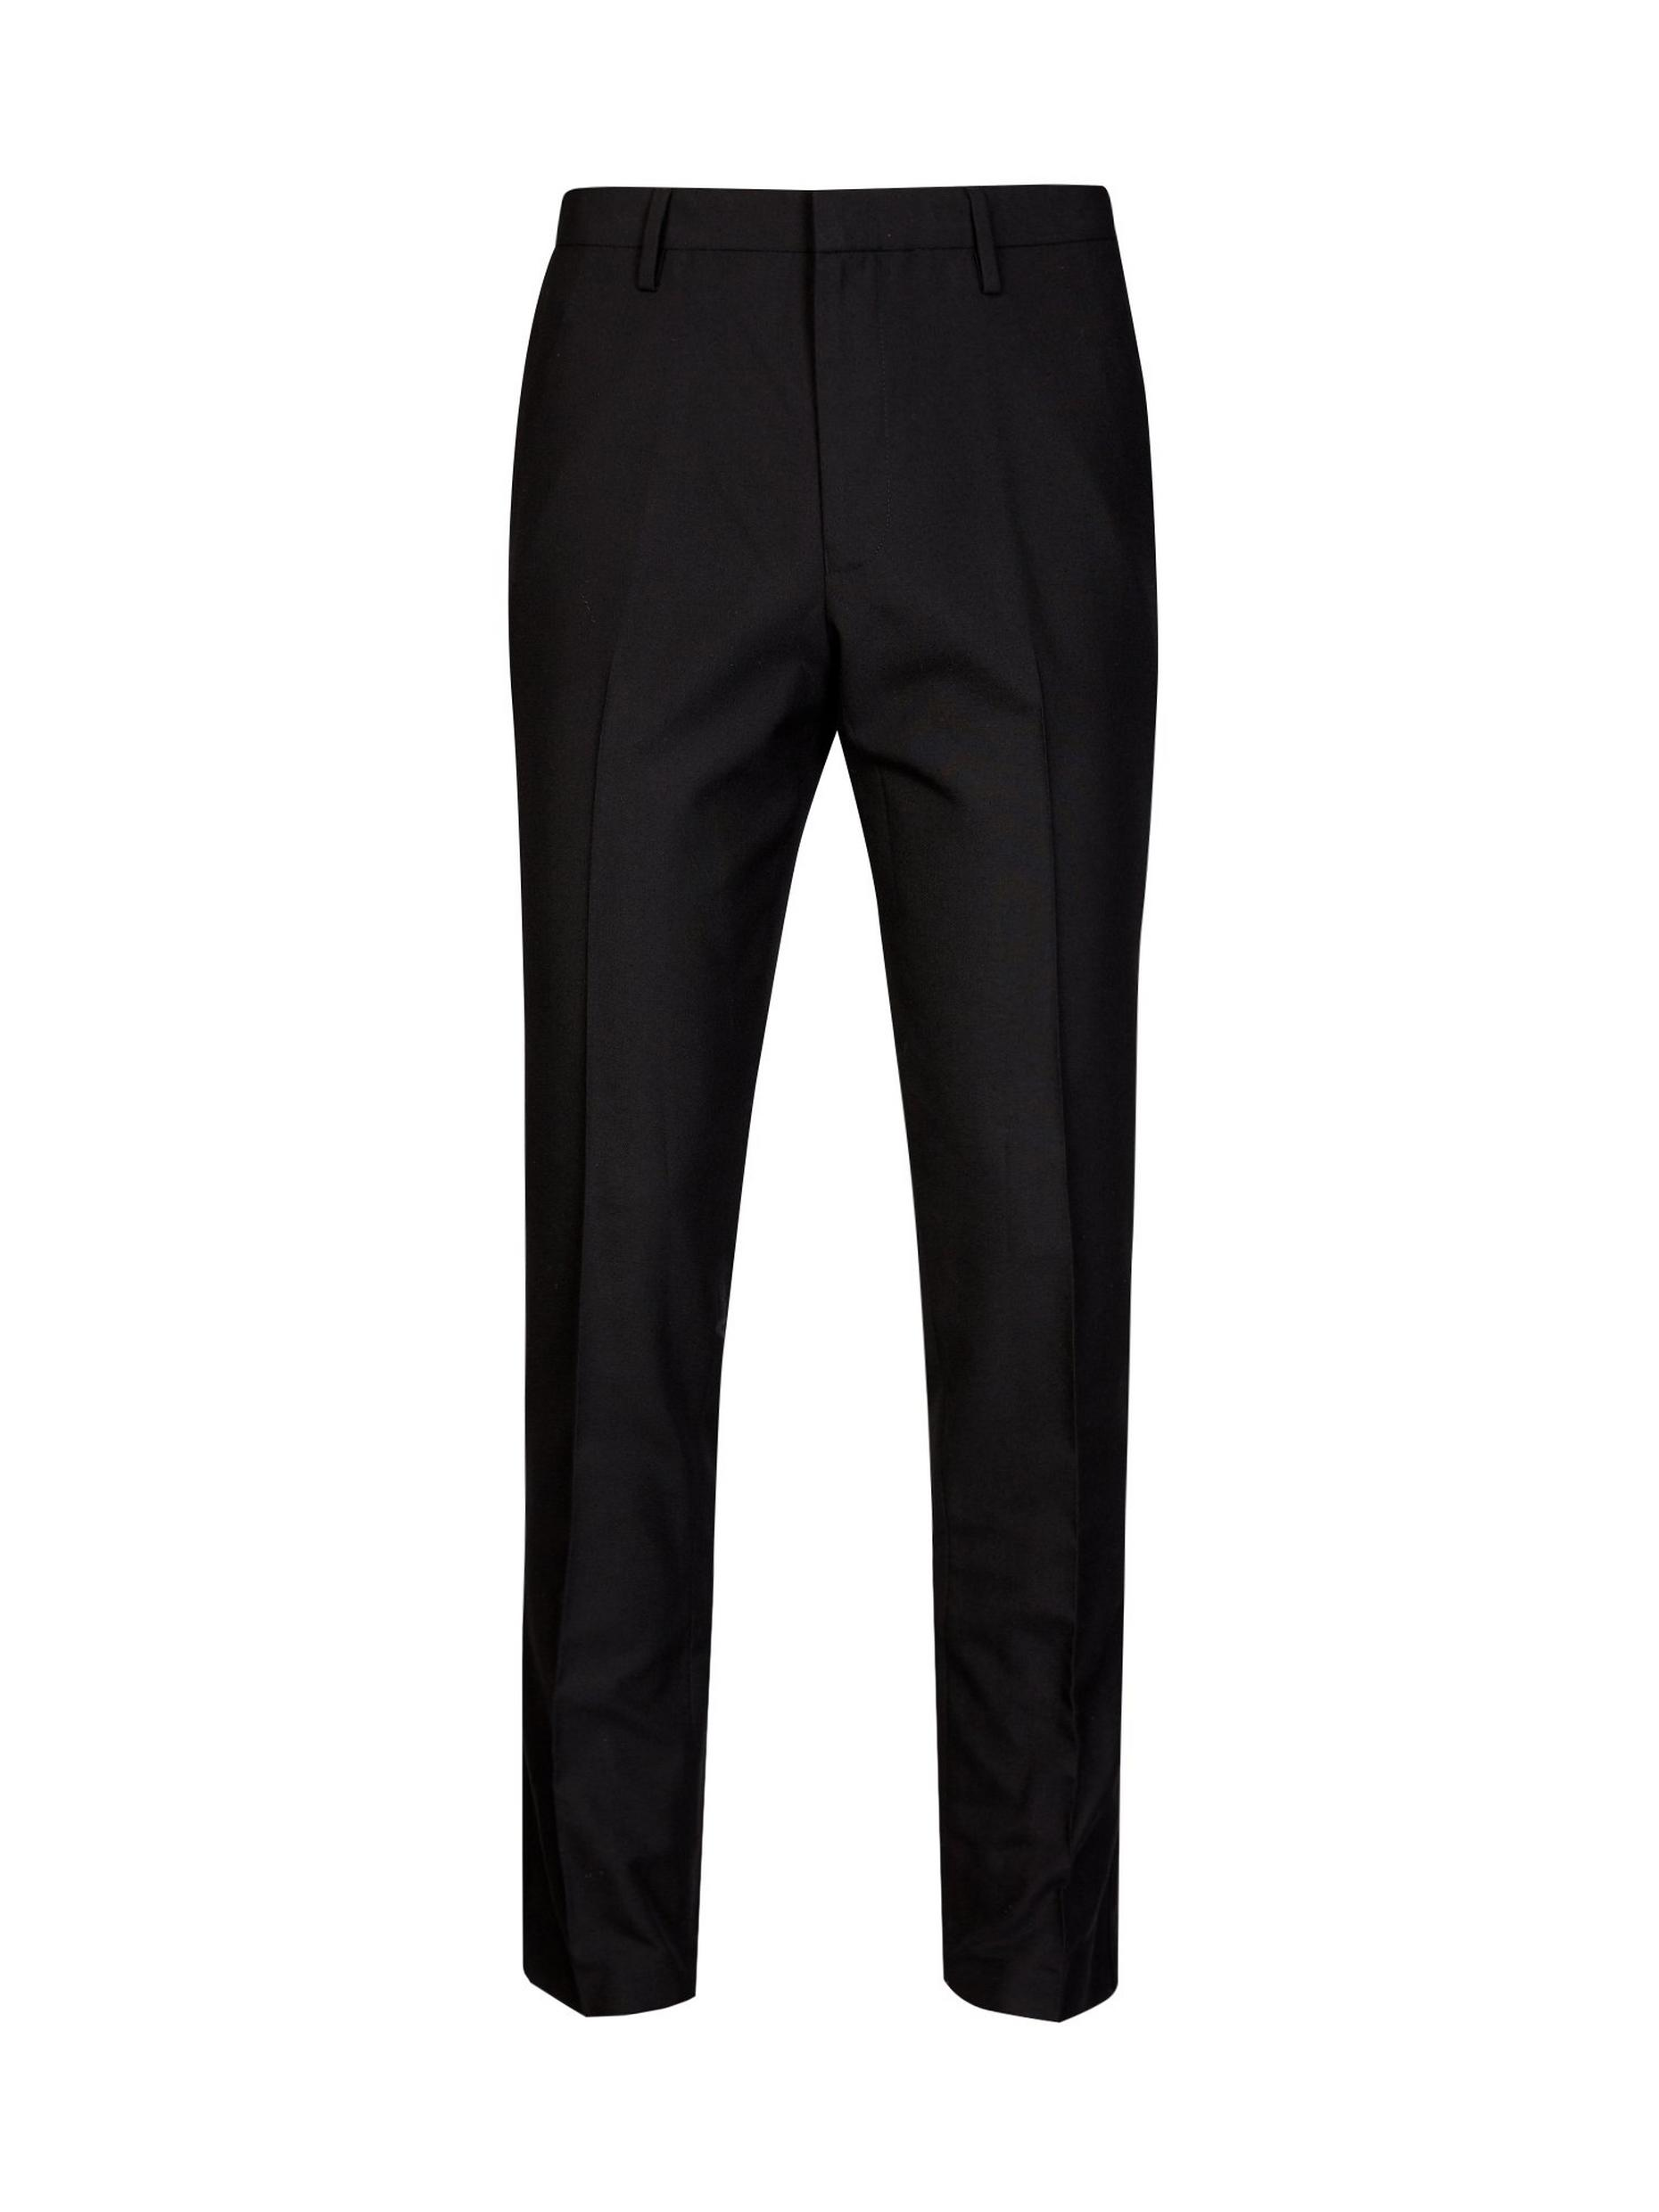 Stretch Tapered Black Trouser